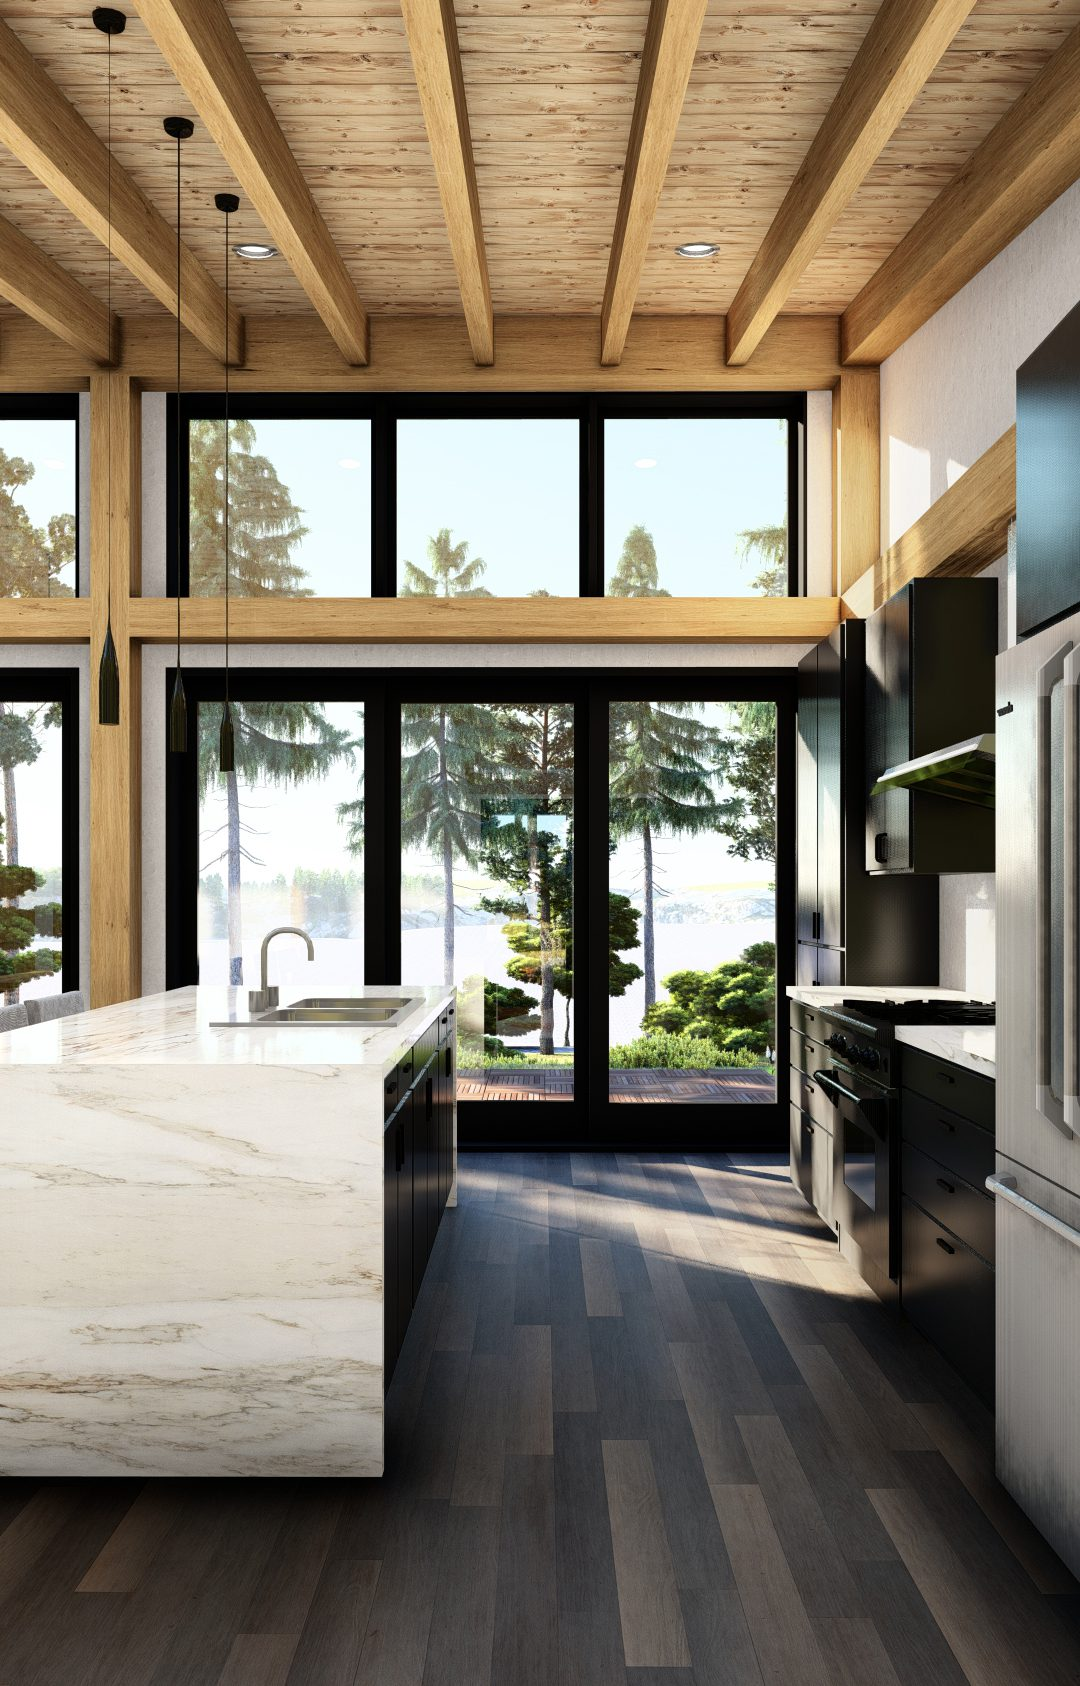 Normerica Timber Frames, House Plan, The Bayfield 3945, Interior, Kitchen